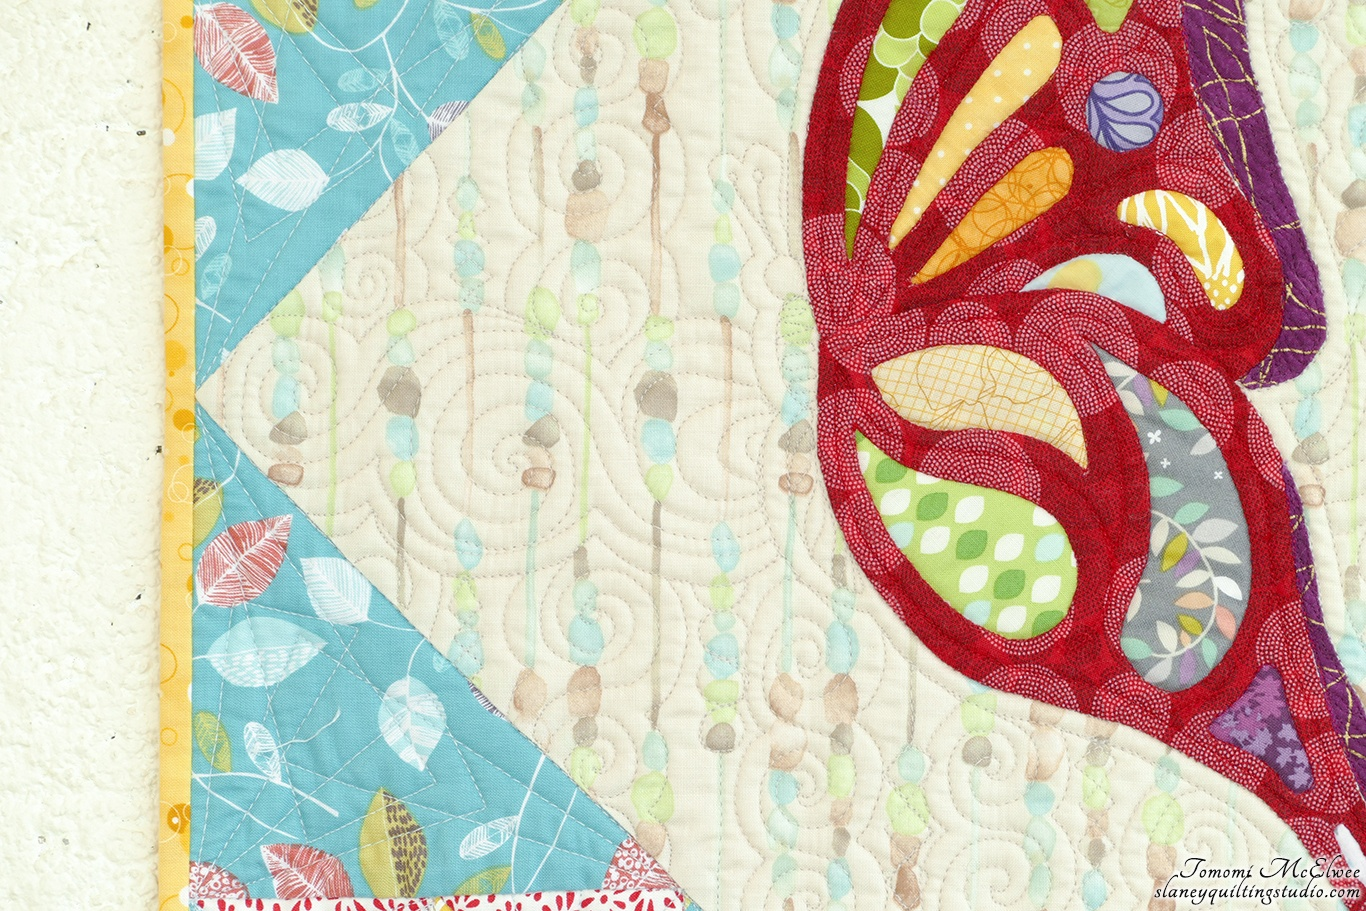 https://slaneyquiltingstudio.com/wp-content/uploads/shopquilt/butterfly-detail-01.jpg